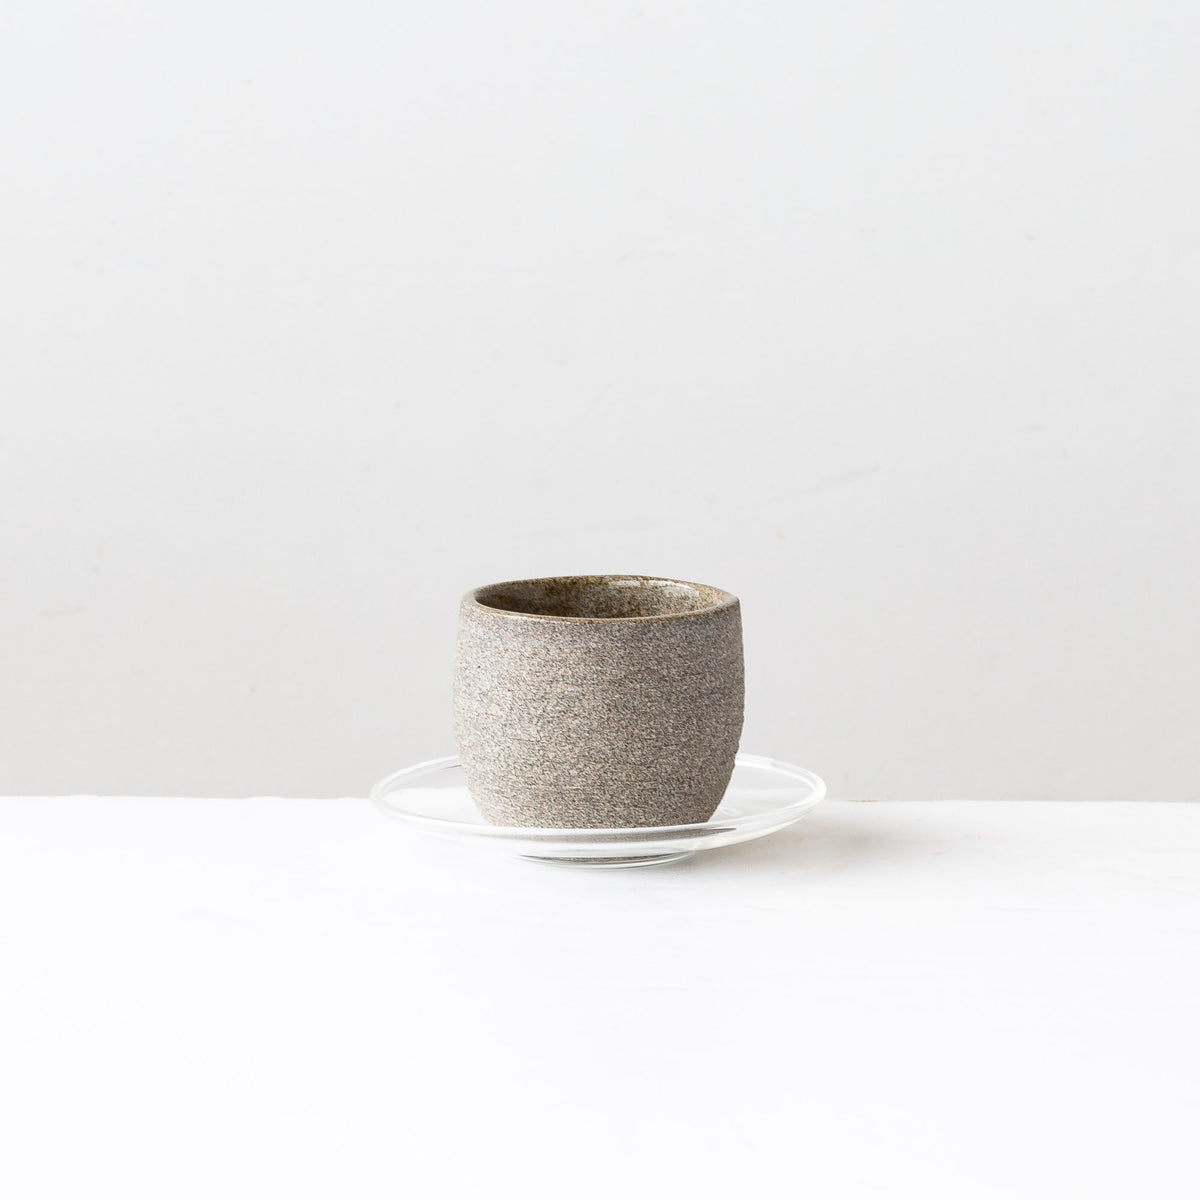 Handmade Stoneware Espresso Coffee Cup & Glass Saucer - Sold by Chic & Basta